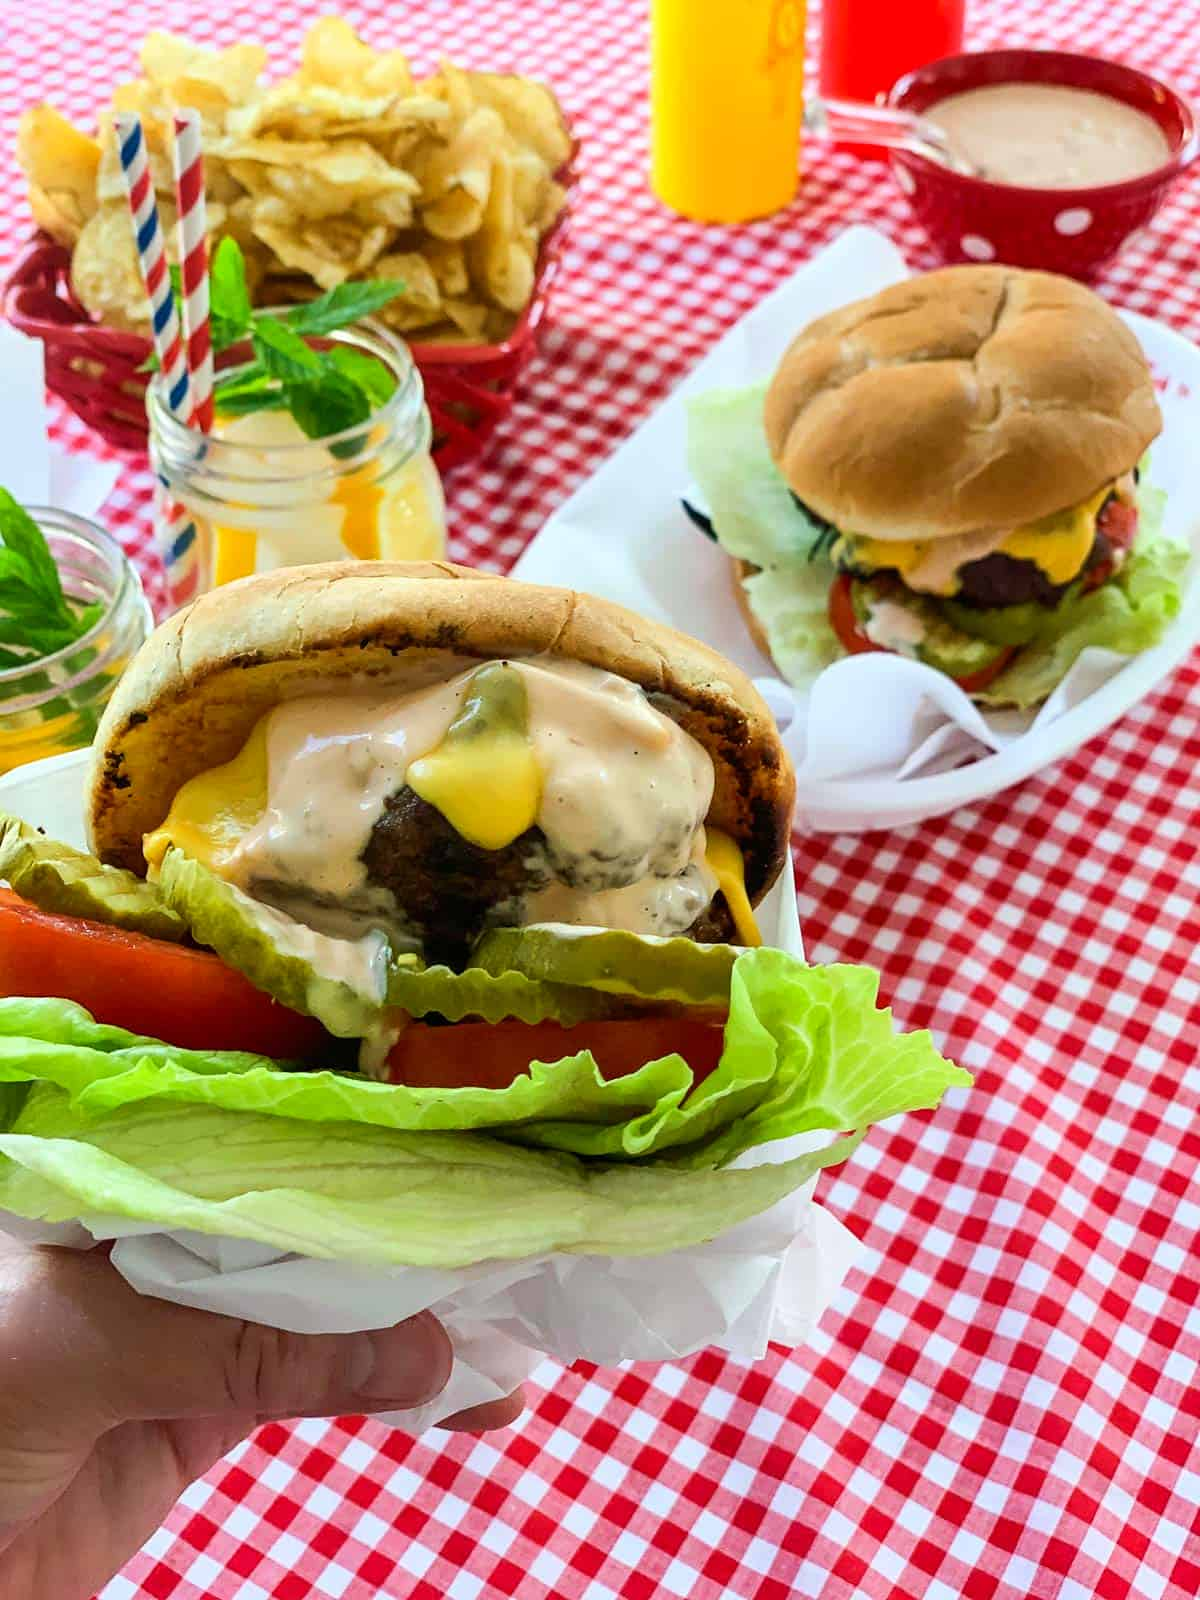 A lady holding a messy grilled cheeseburger wrapped in paper with baskets of burgers in the background.